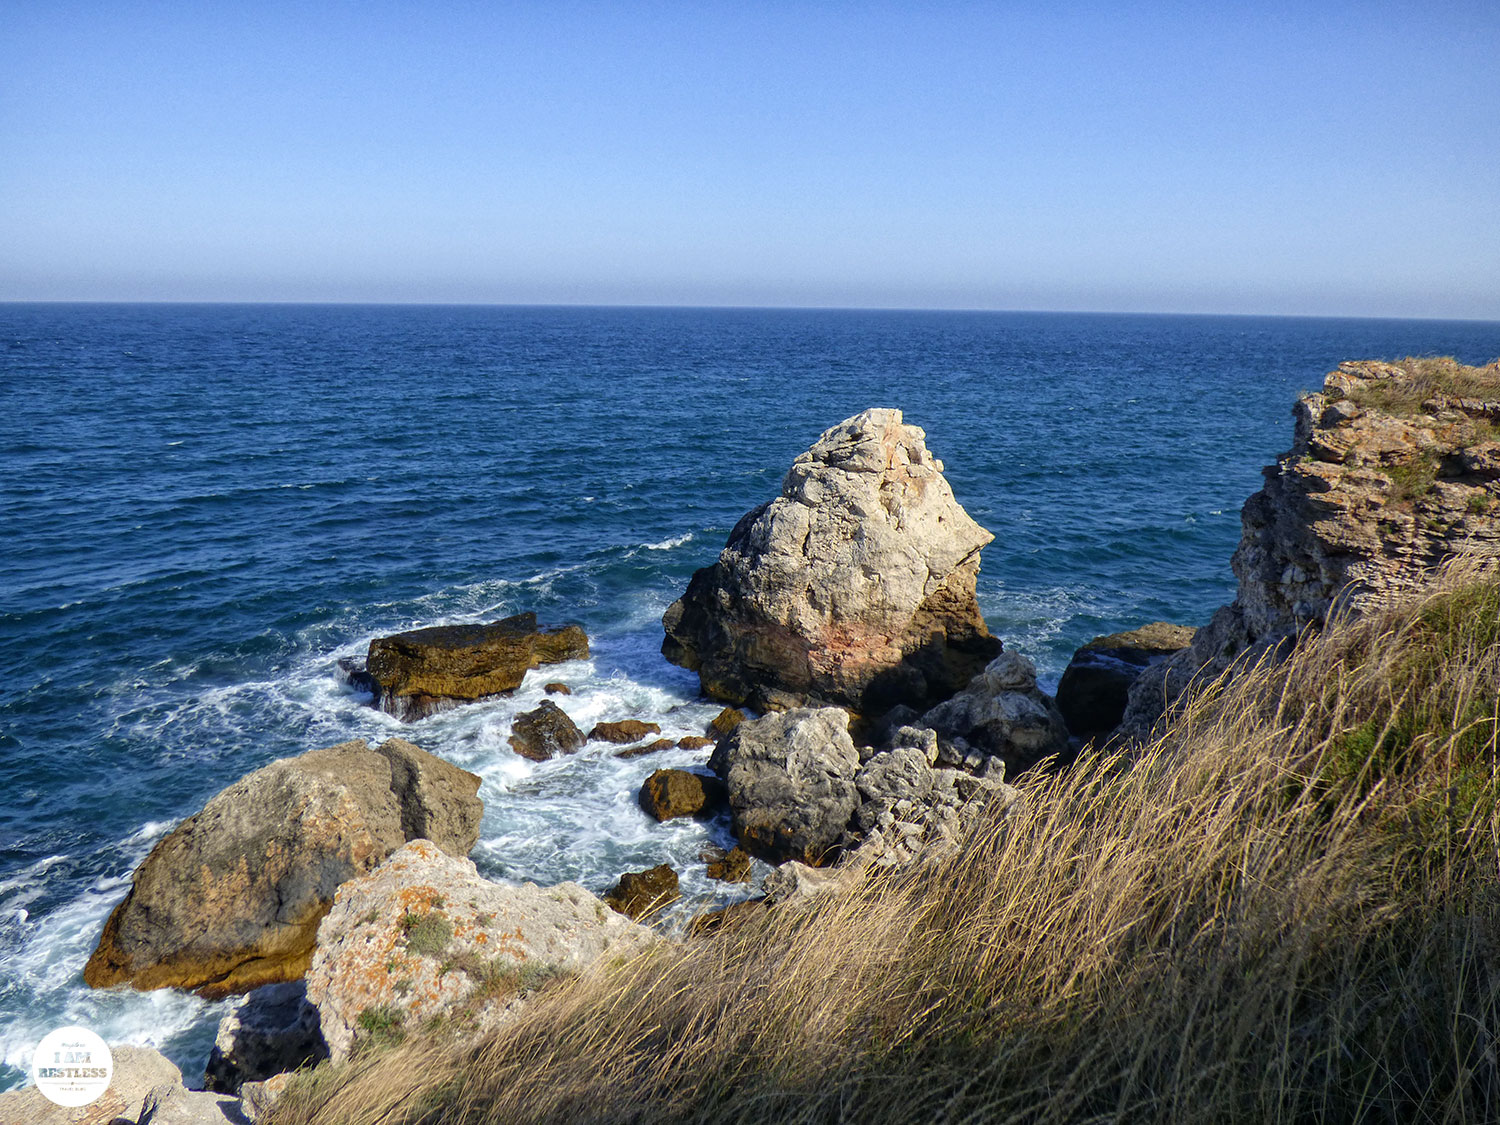 3rd Time Is the Charm: The Bay, Waves & Seashell Fossils in Northern Bulgaria Seaside Tyulenovo